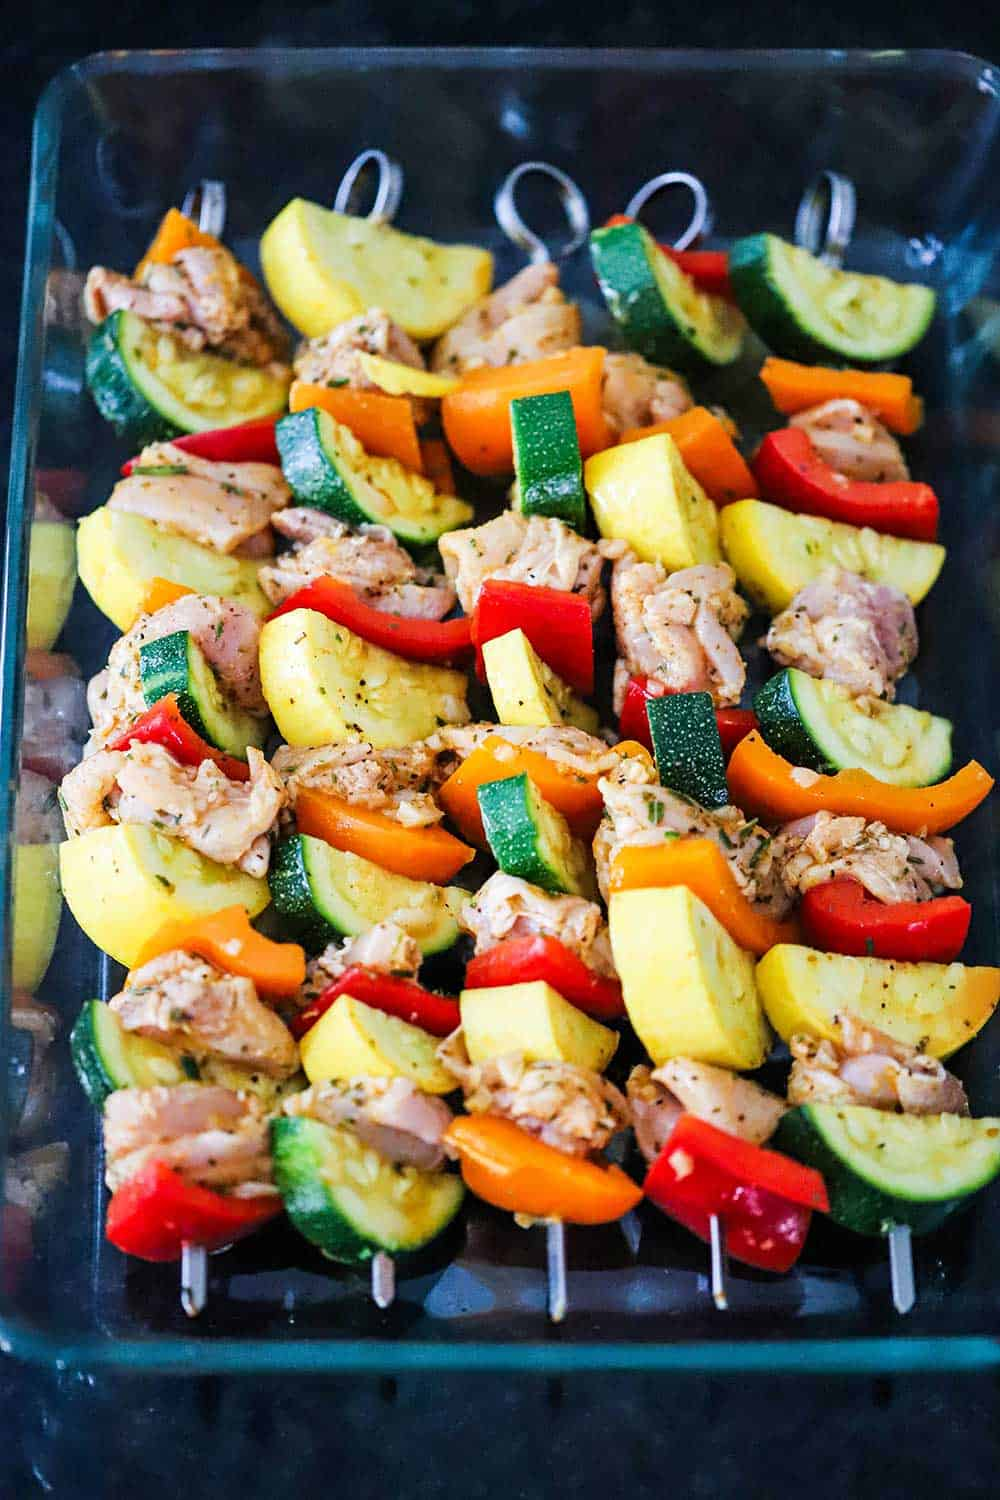 A 9x13-inch glass baking dish filled with 5 chicken and vegetable kabobs.